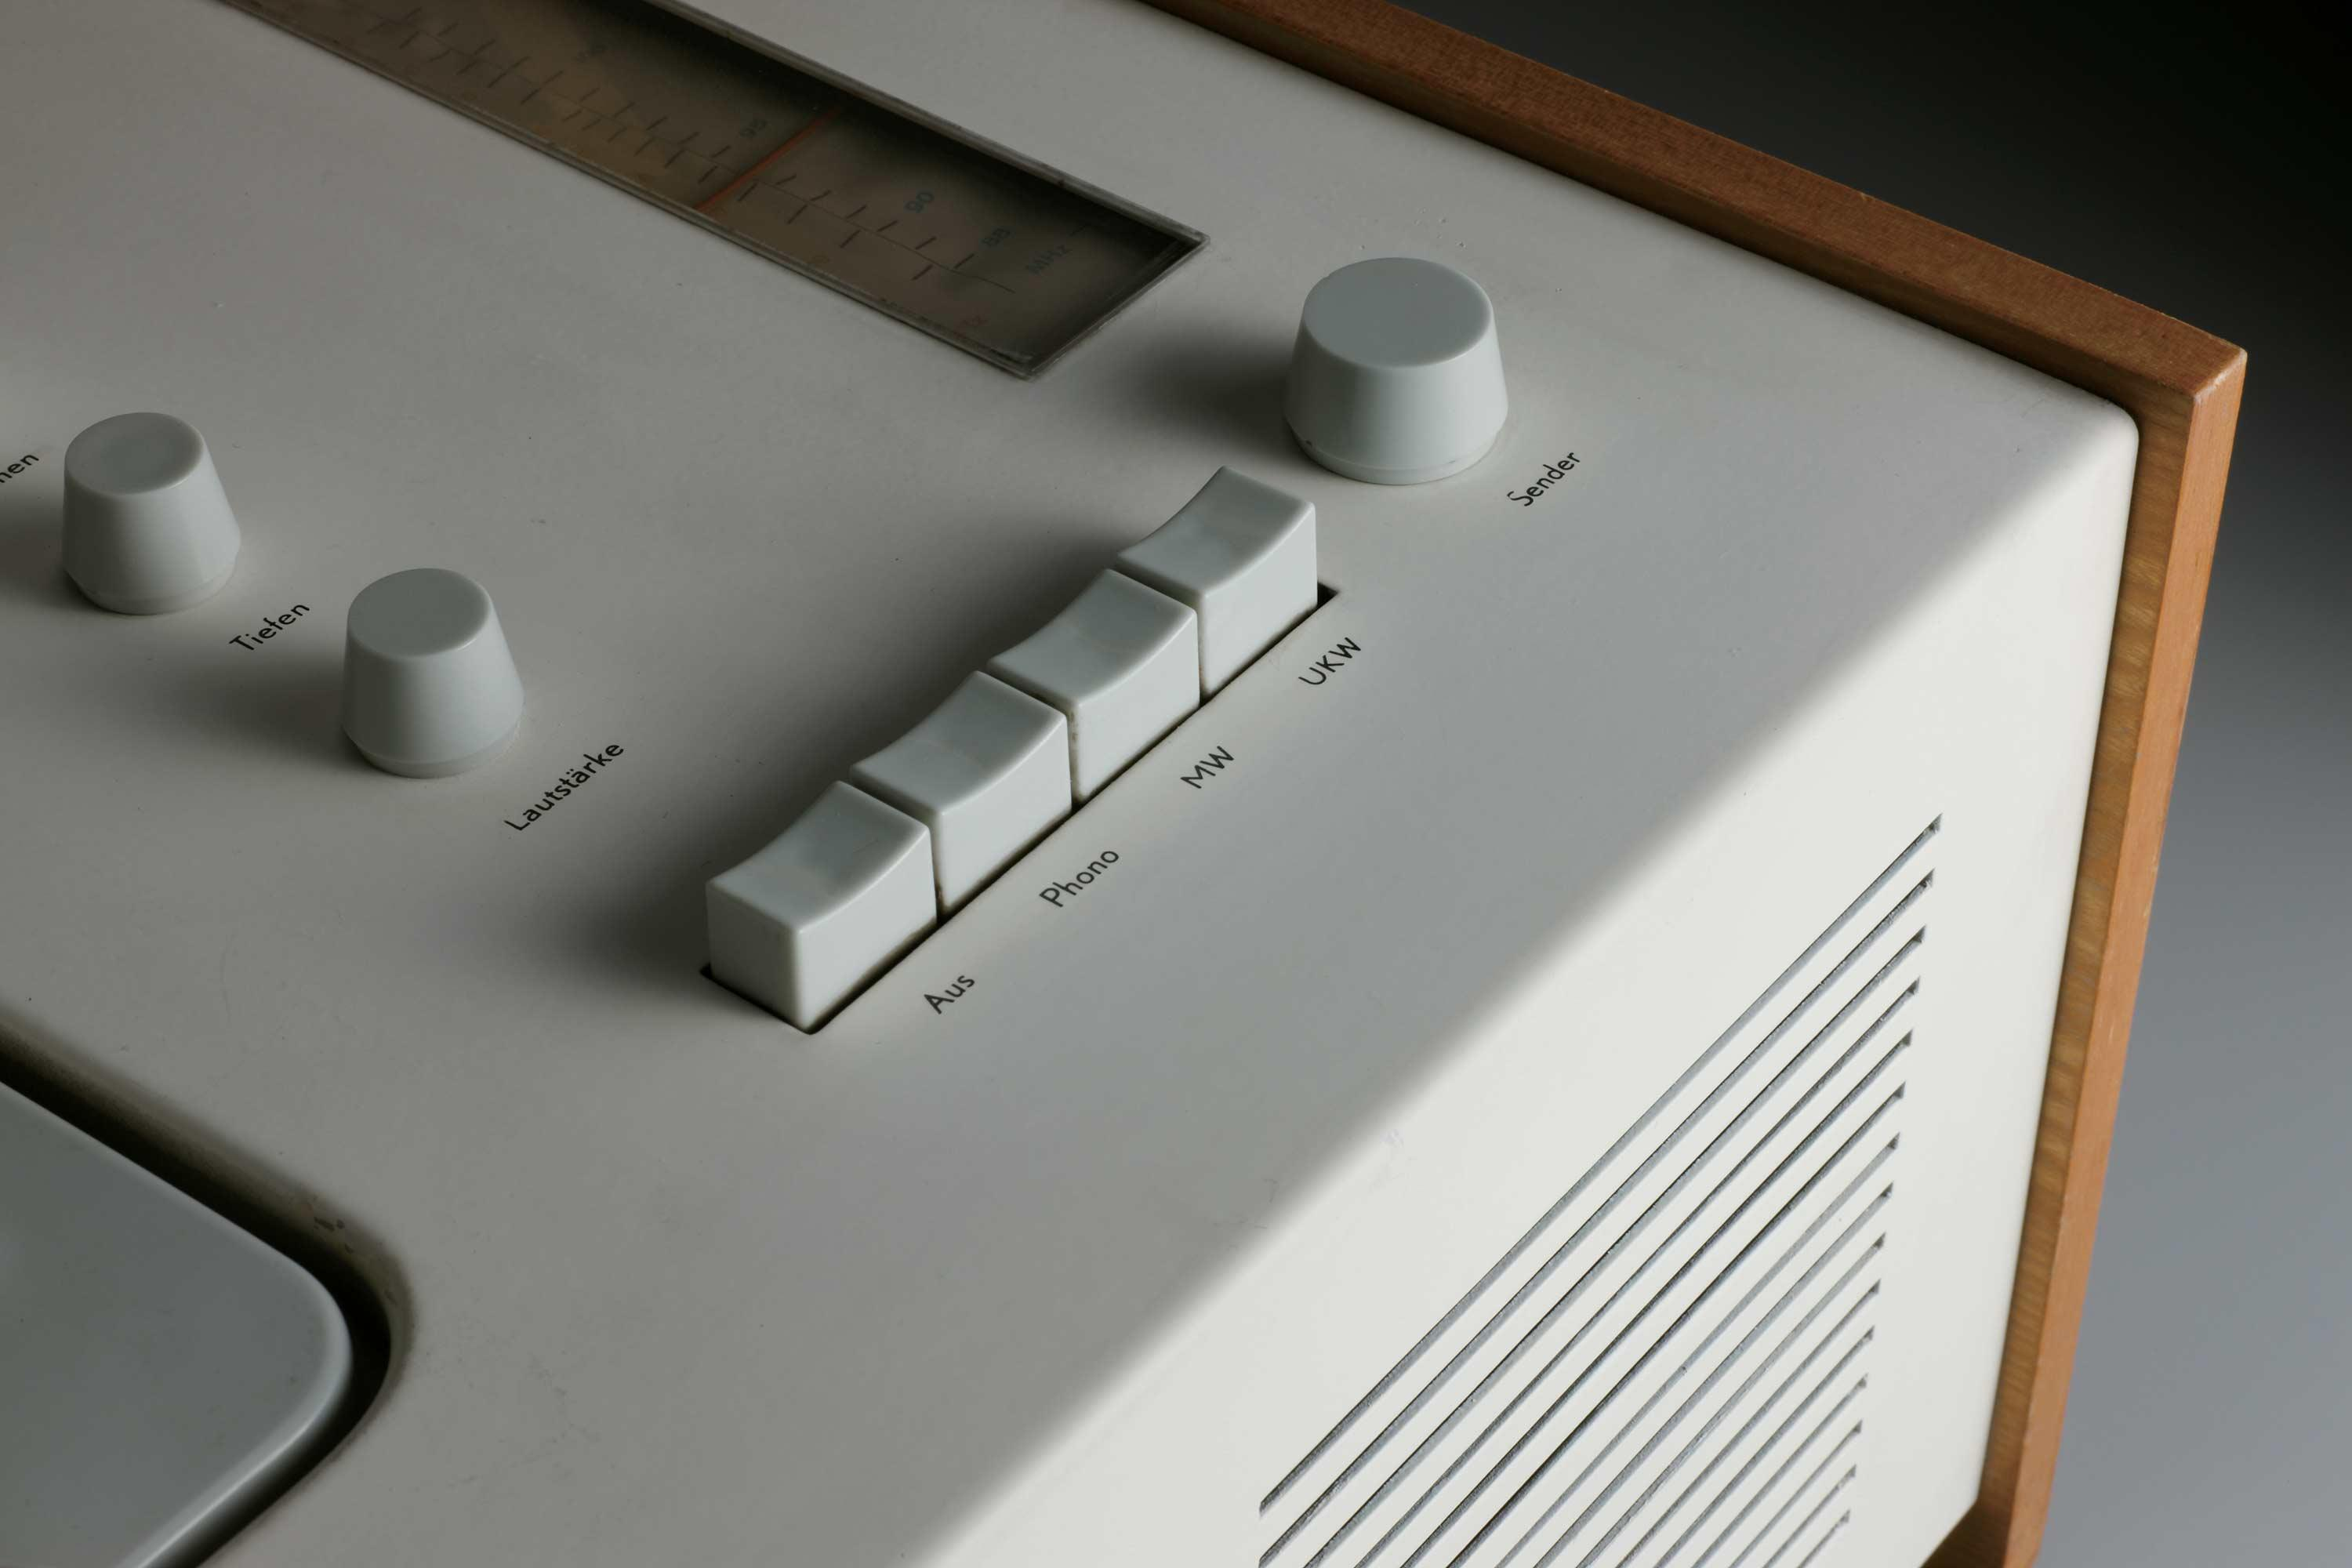 SK-4-Radio-phono-combination-designed-by-Dieter-Rams-and-Hans-Gugelo.jpg